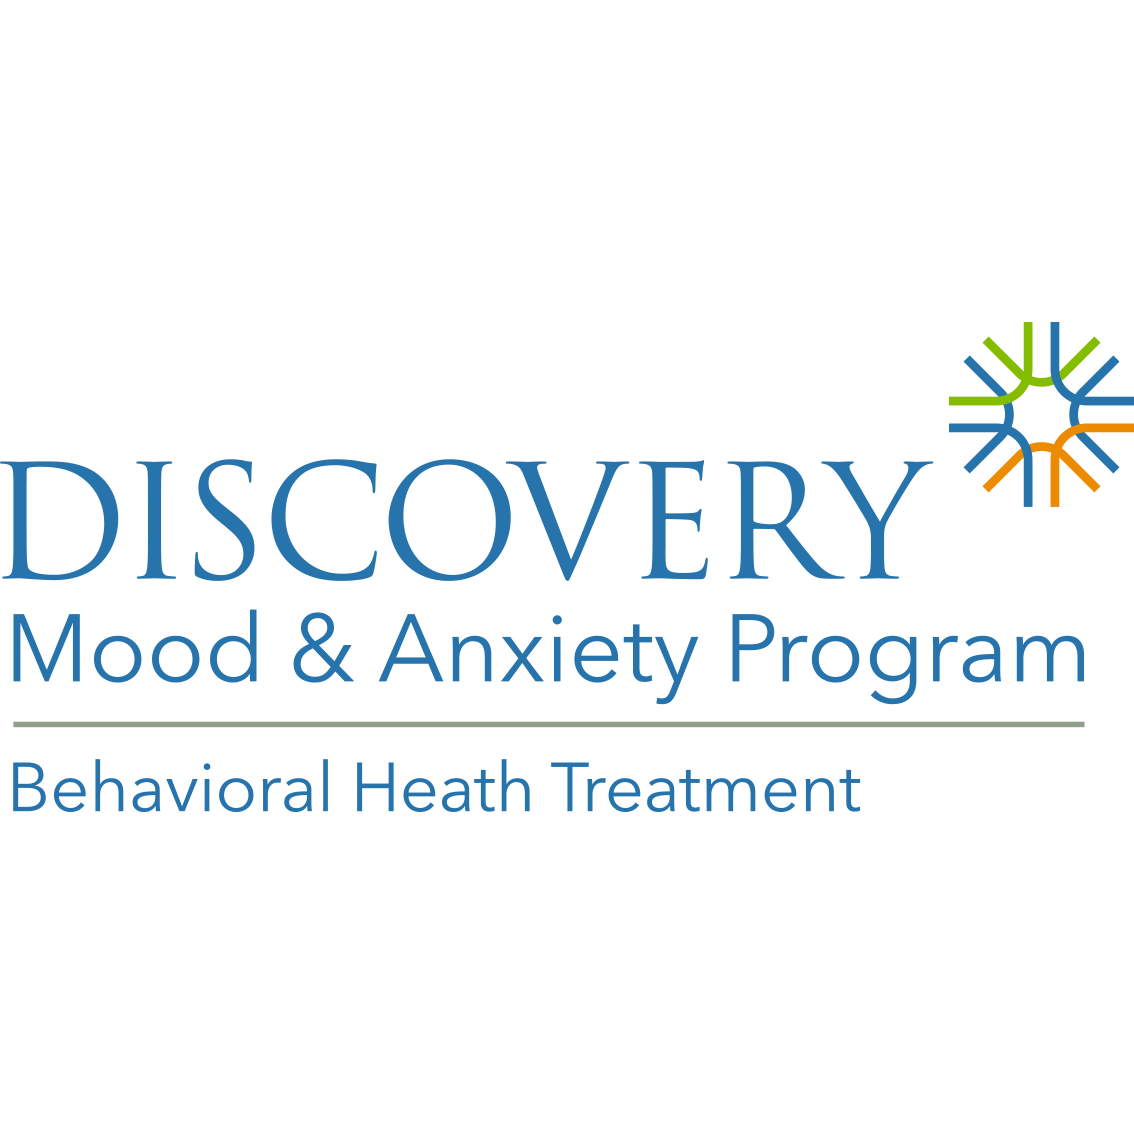 Discovery Mood & Anxiety Program | New Haven Outpatient Treatment